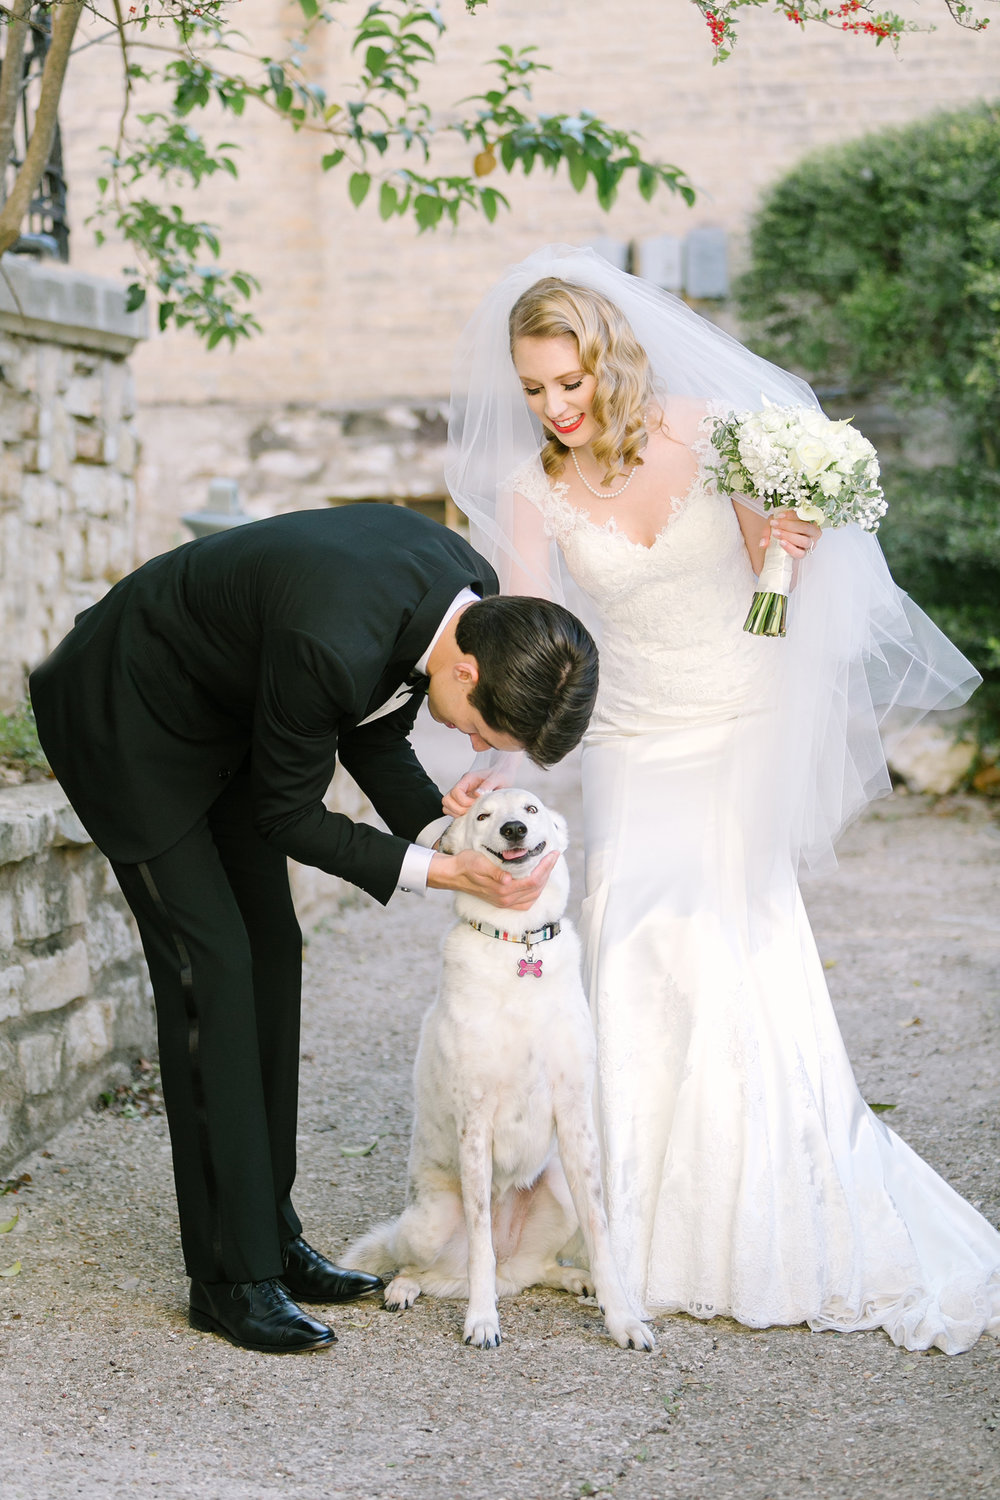 Austin_Wedding_Photographer_Kimberly_Brooke_Photographic_143.jpg